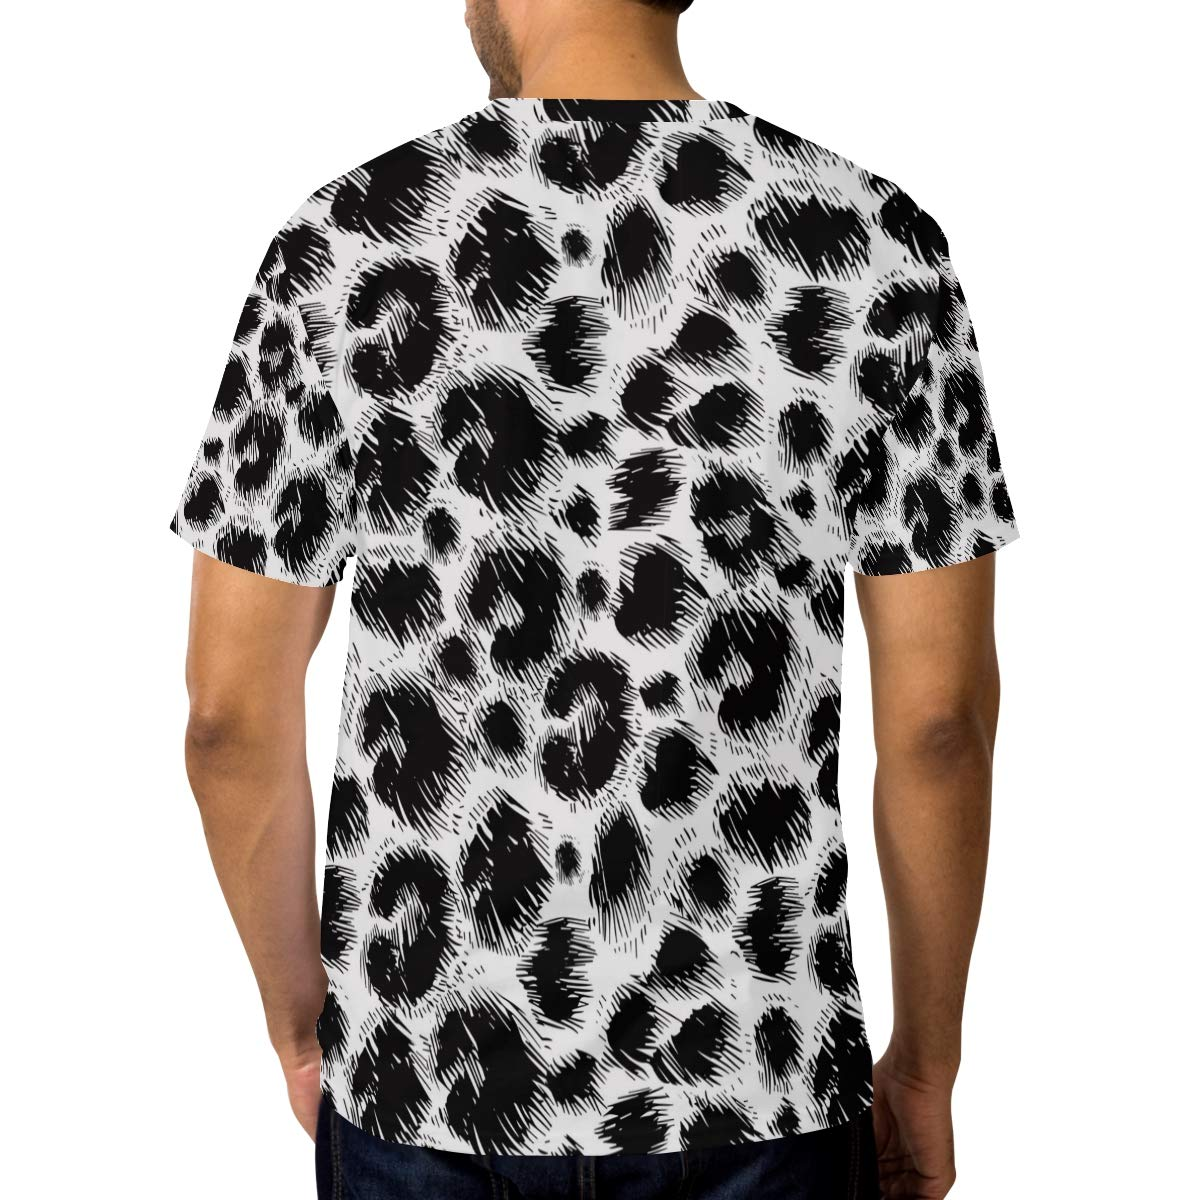 Horatiood Huberyyd Leopard Print Pumps Black Mens T Shirts Graphic Funny Body Print Short T-Shirt Unisex Pullover Blouse